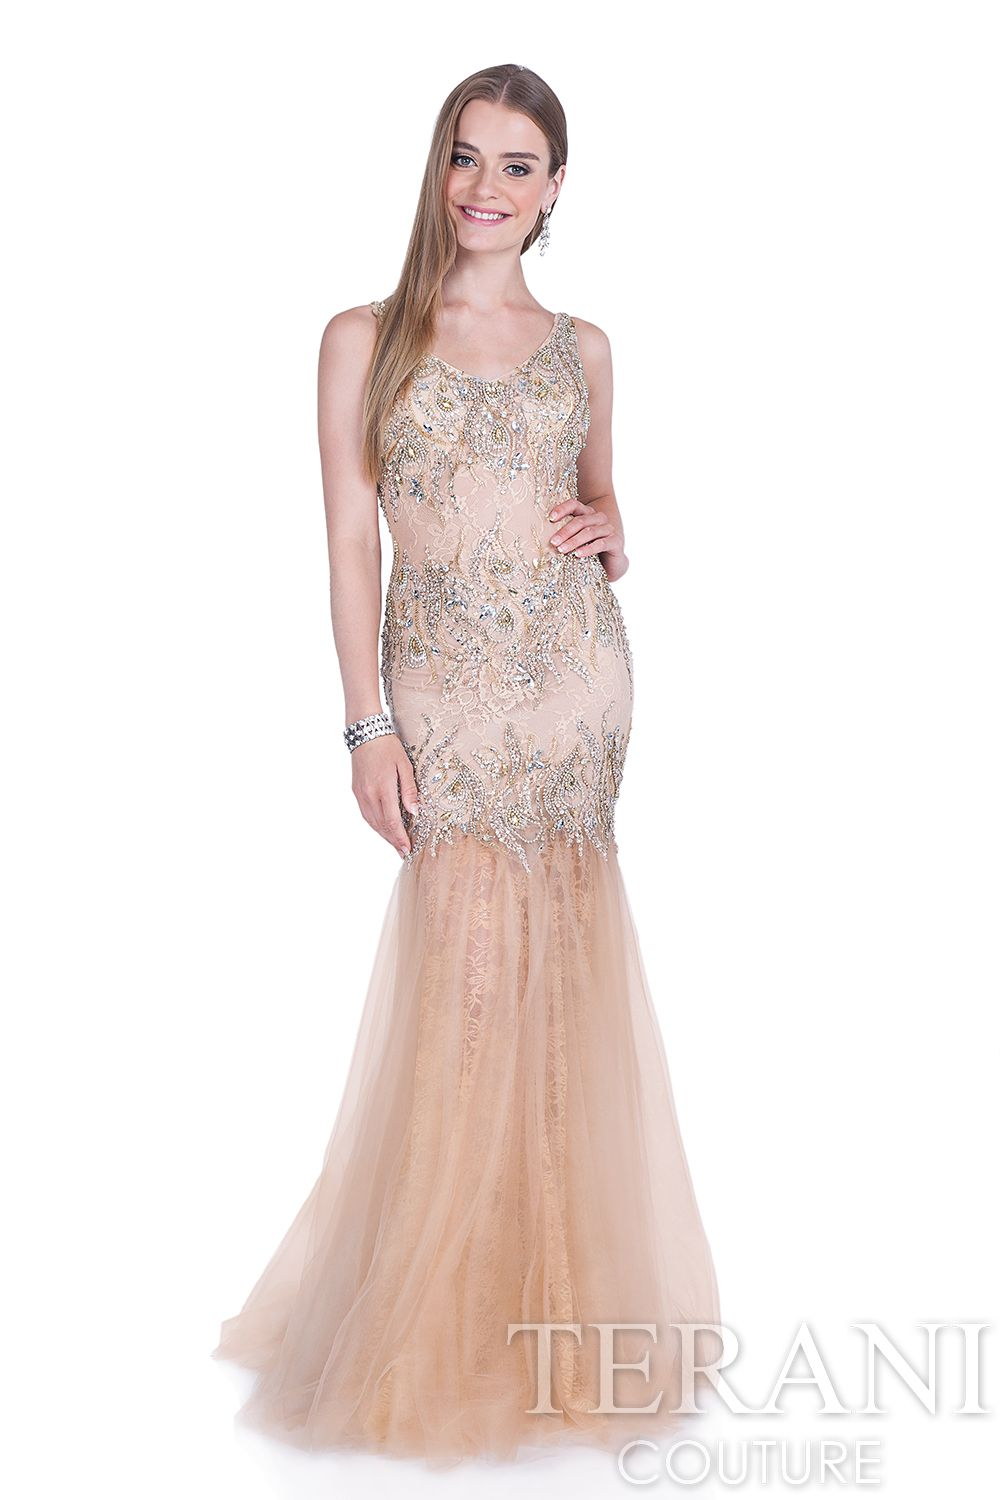 Lace mesh trumpet prom gown with crystal embellishments along the